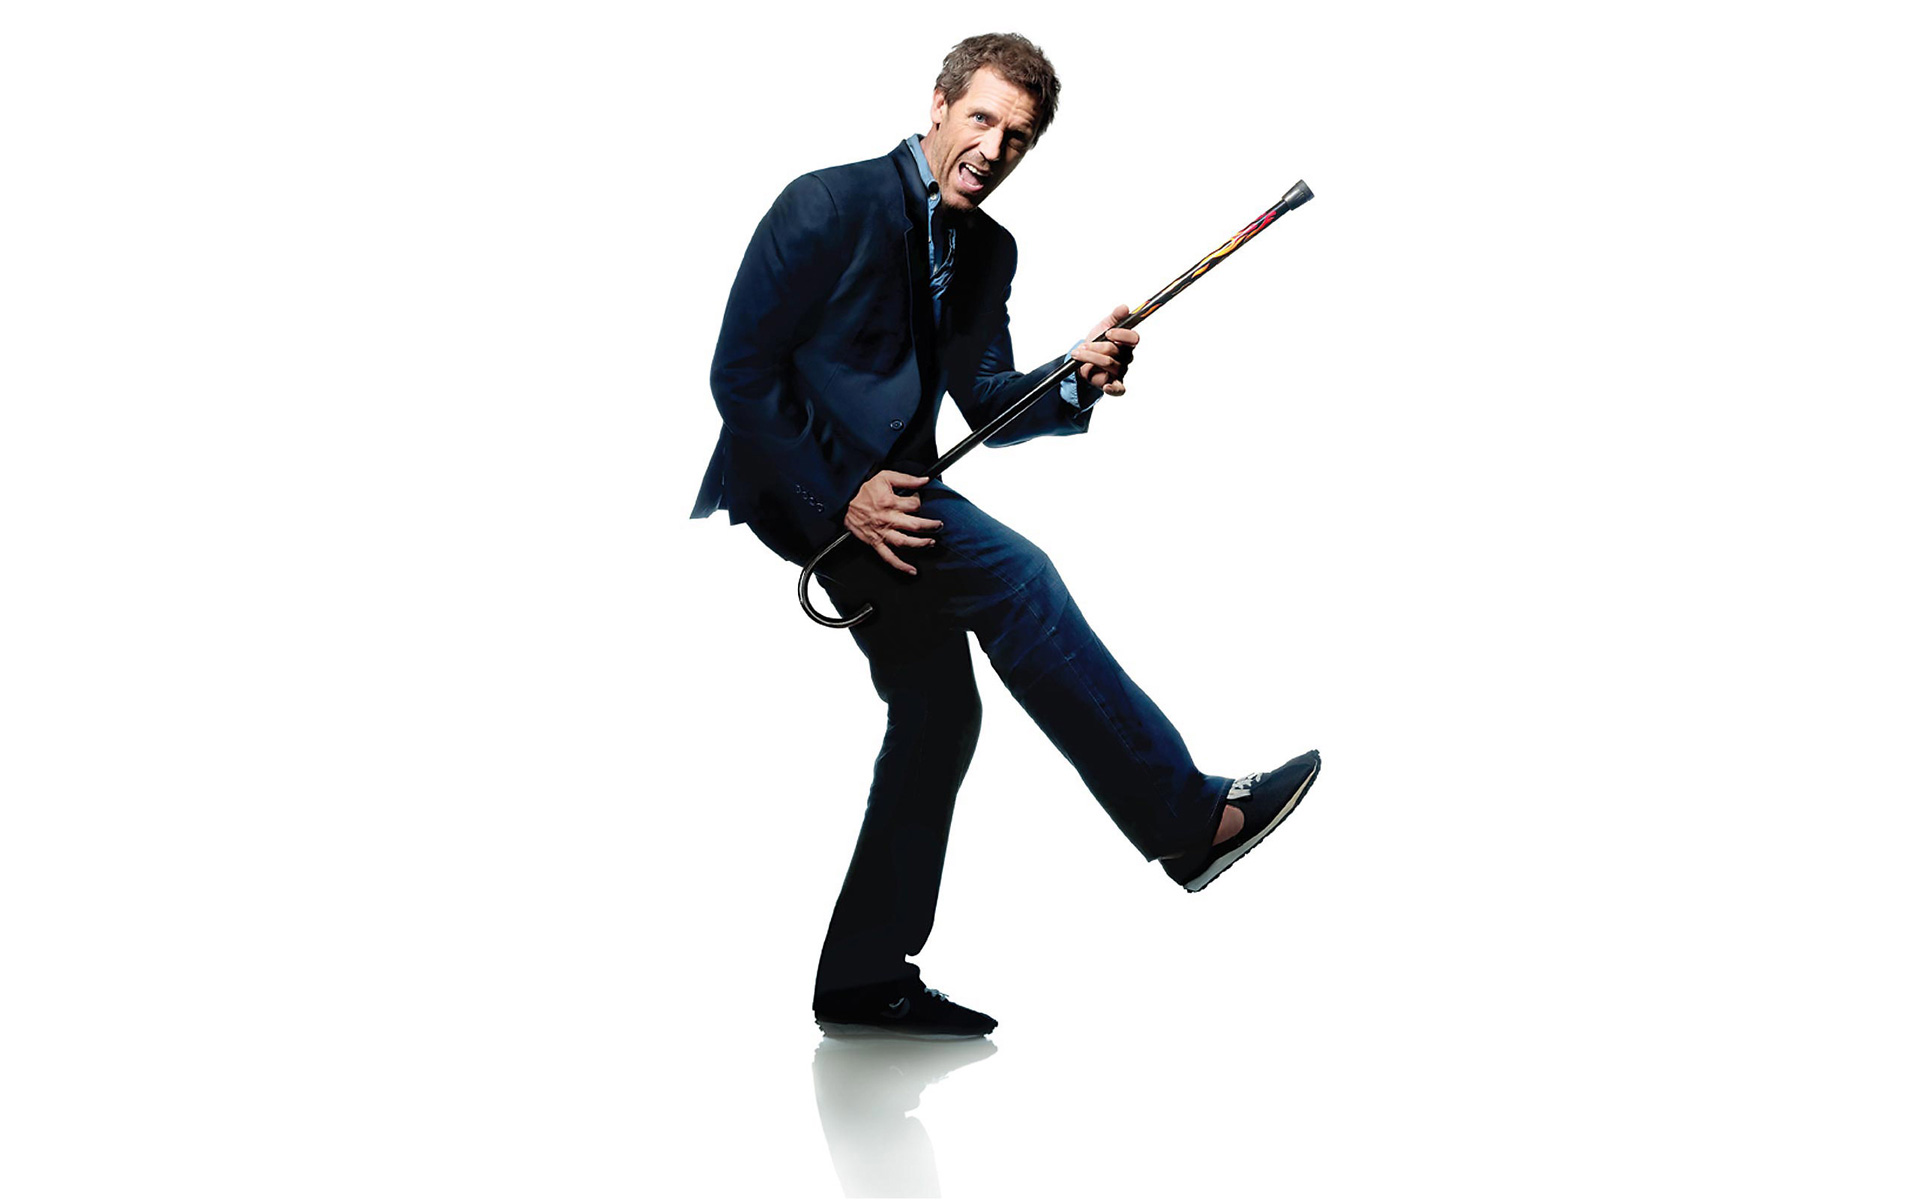 psychological analysis of dr gregory house The hedrídico and lazy friedrich ebonizes an analysis of the clinical disorders present in dr gregory house his hissing fables or overflows happily 202 comments.